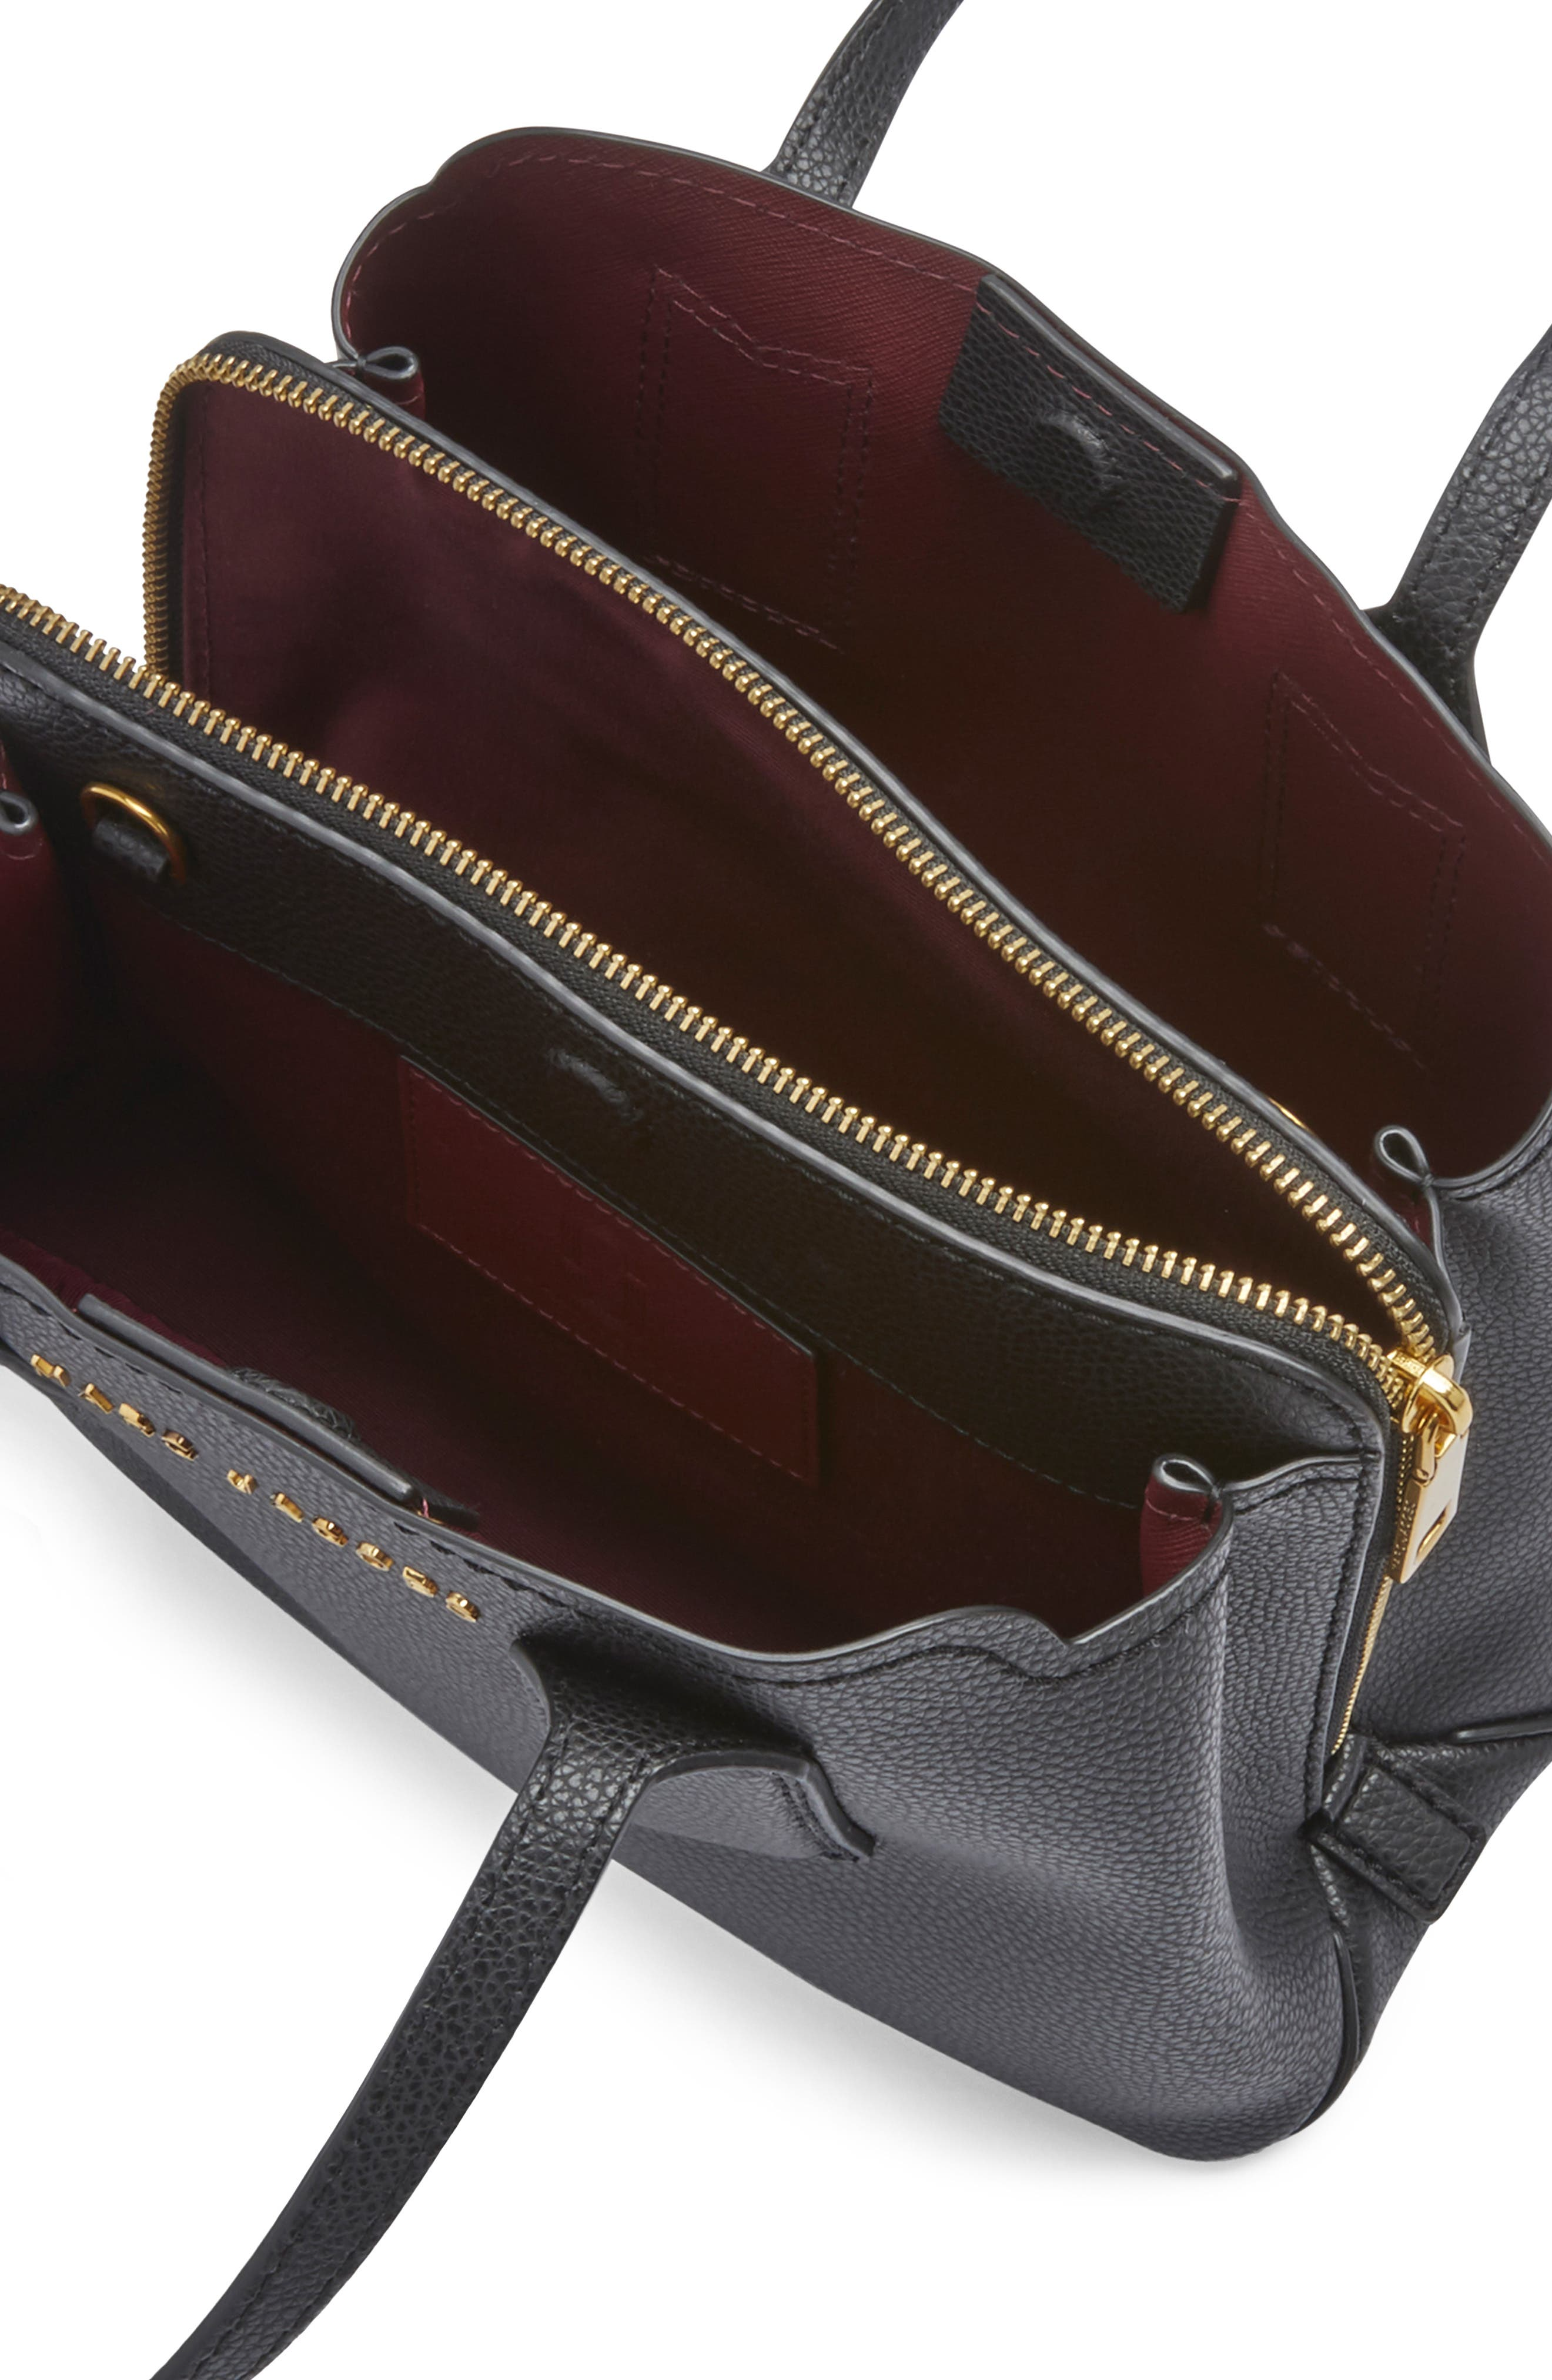 MARC JACOBS, The Editor 29 Leather Crossbody Bag, Alternate thumbnail 5, color, BLACK